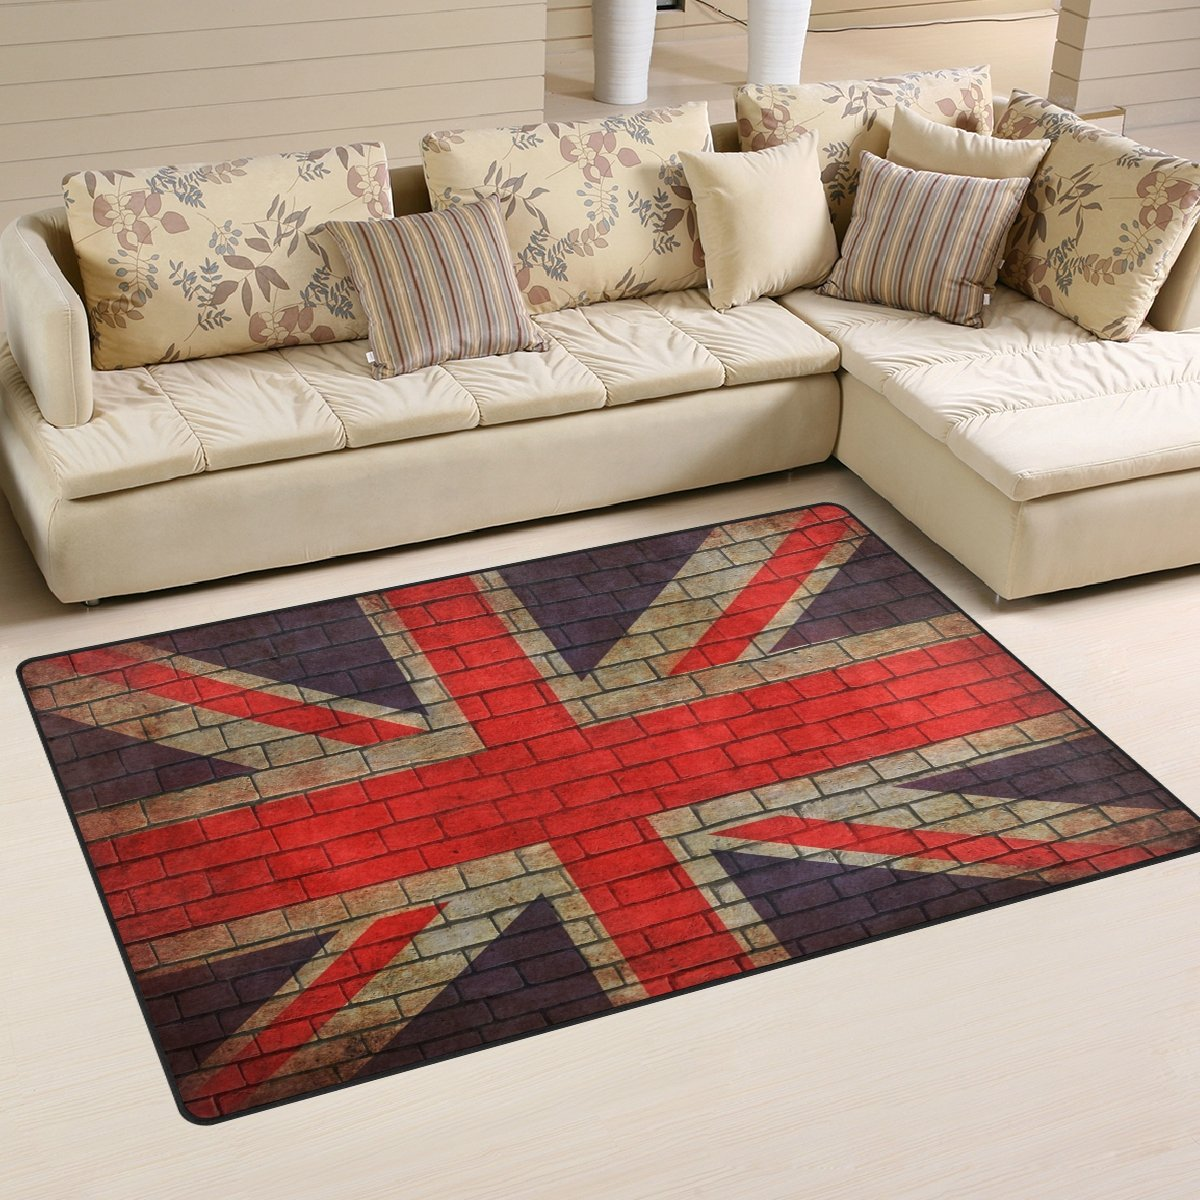 WellLee Area Rug,Great Britain Flag On Brick Wall Floor Rug Non-Slip Doormat for Living Dining Dorm Room Bedroom Decor 31x20 inch